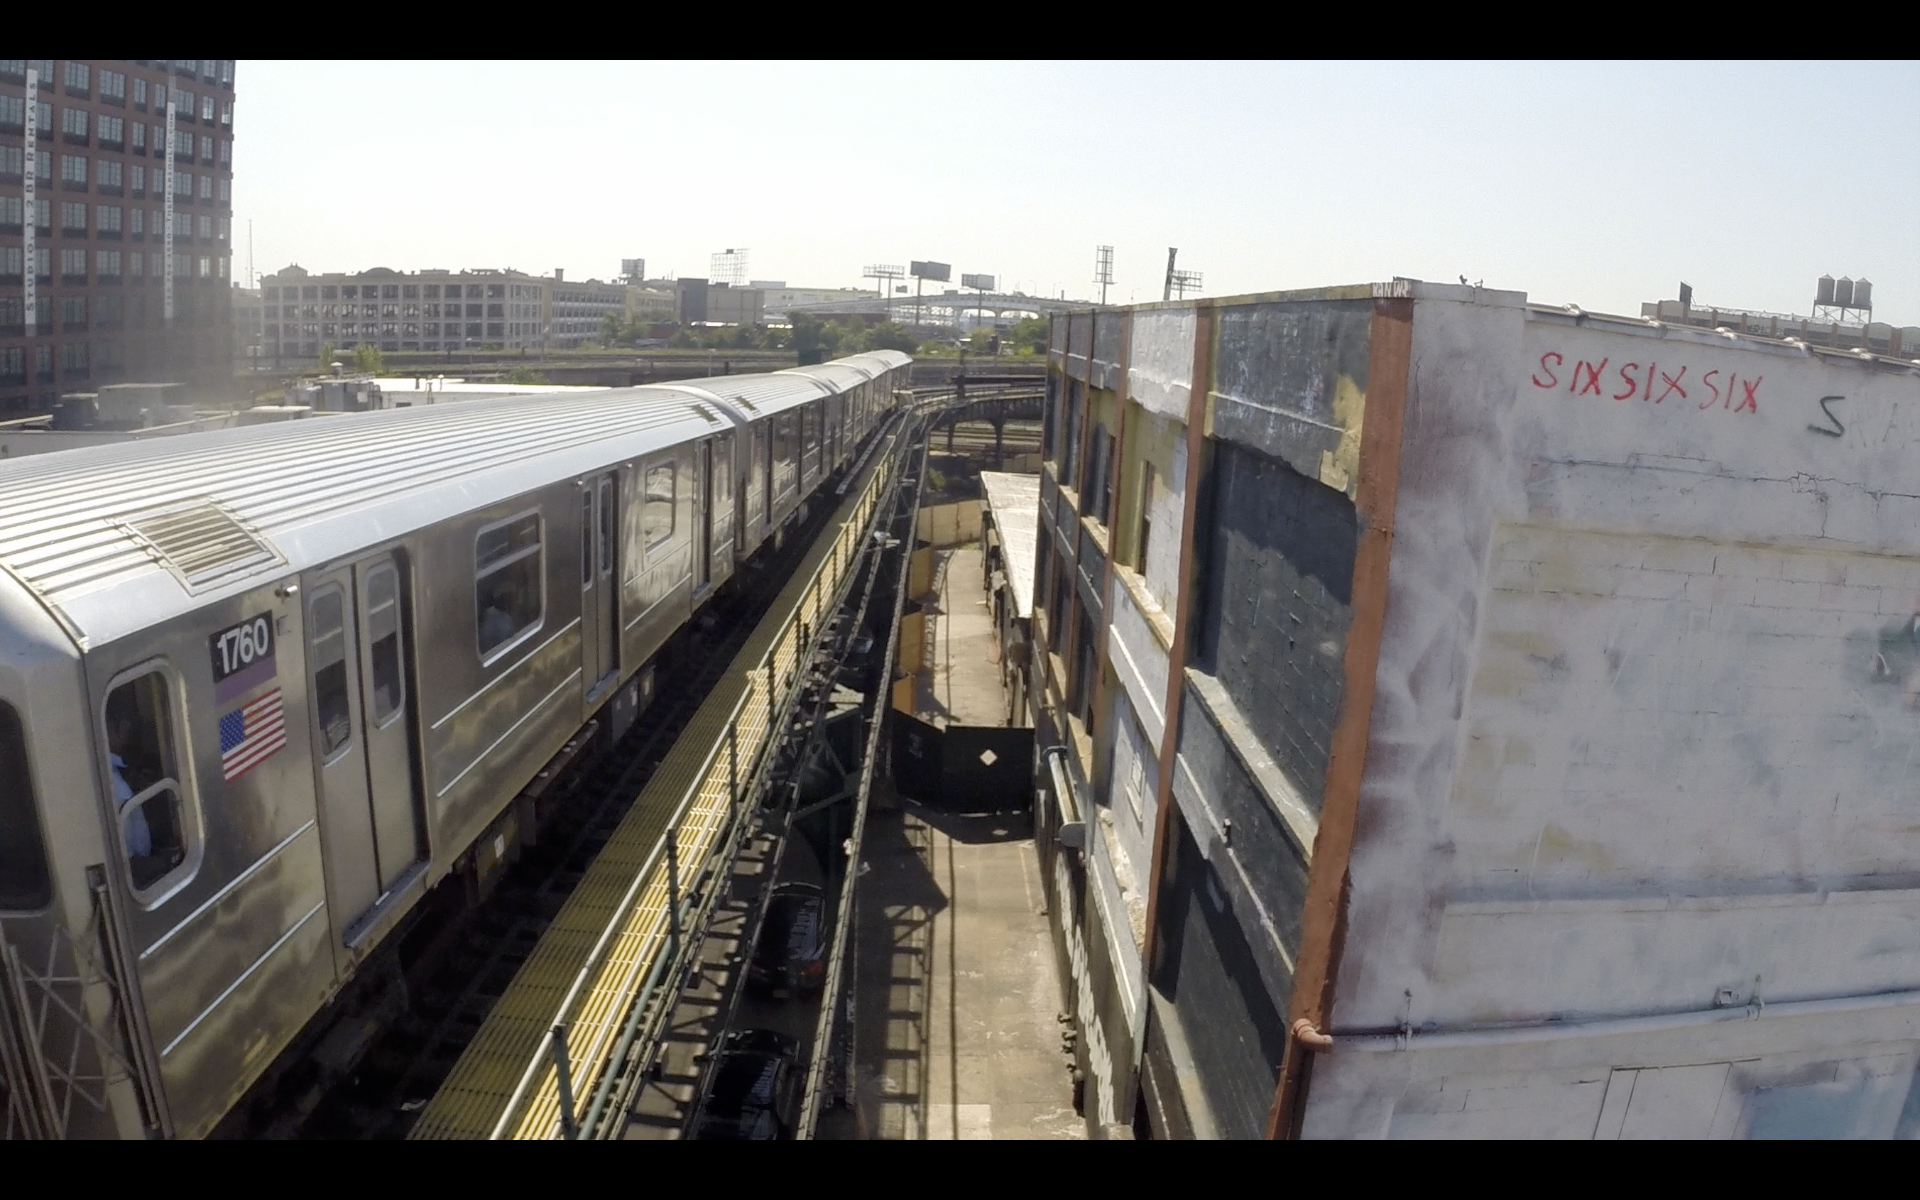 7 Train over Davis St., Long Island City, Queens NY